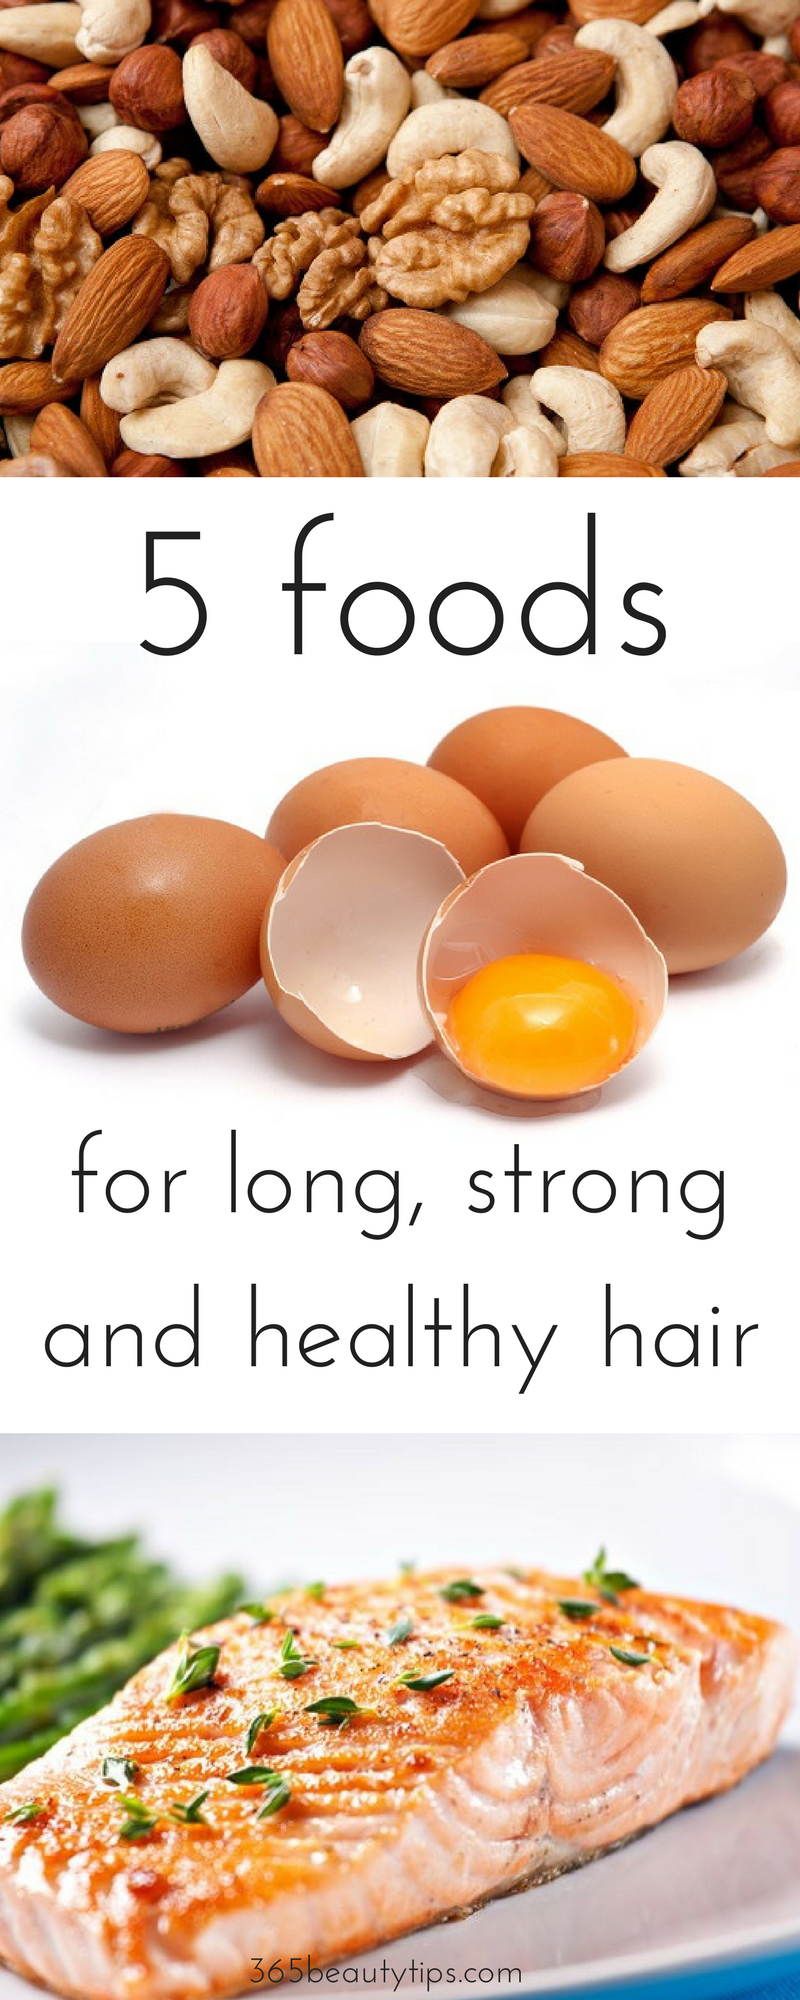 biotin what is it good for